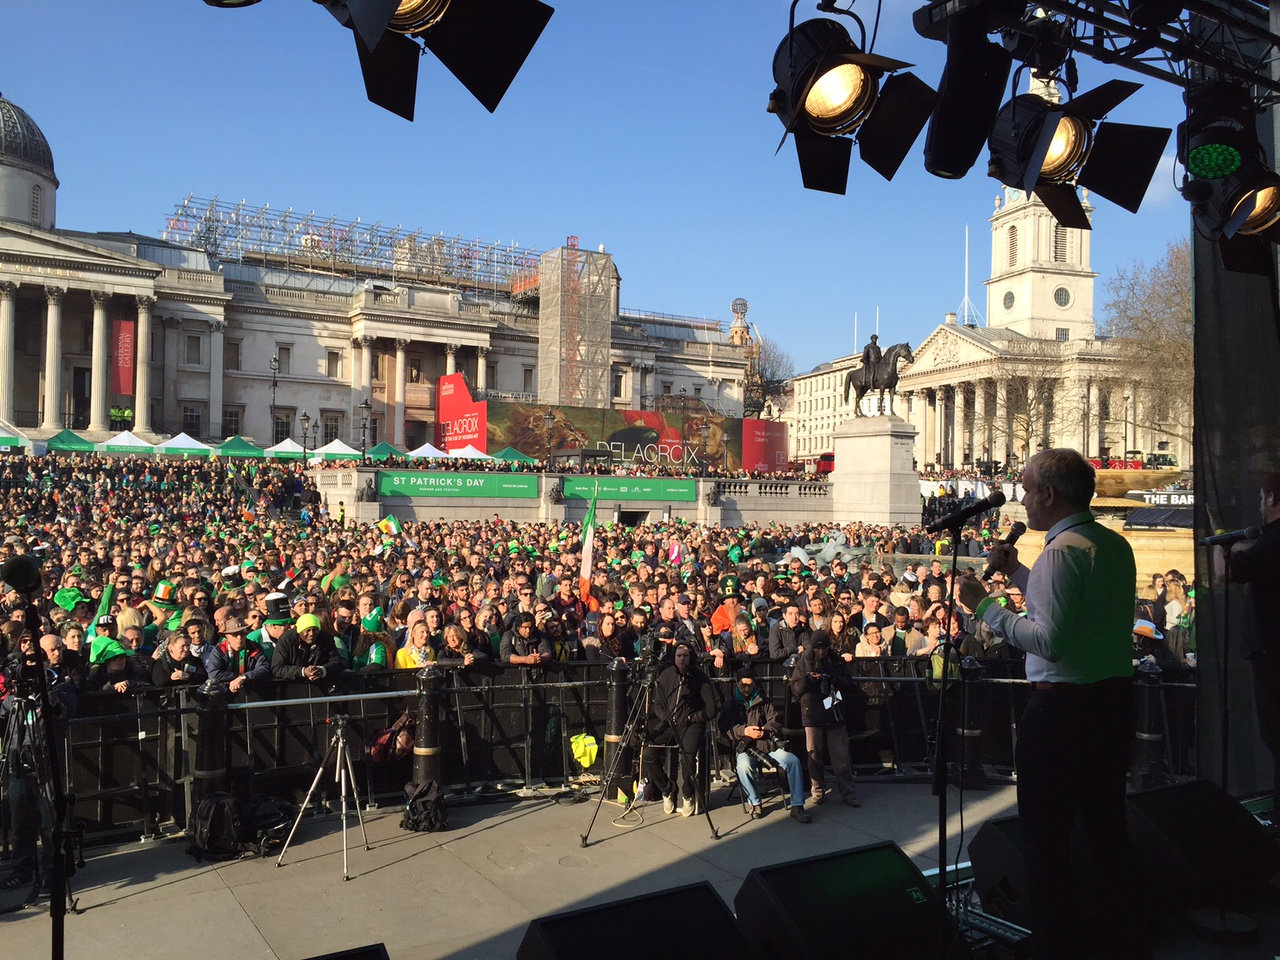 Colm O'Gorman, Executive Director of Amnesty International in Ireland, at St. Patricks Day Parade, London 13 March, 2016.